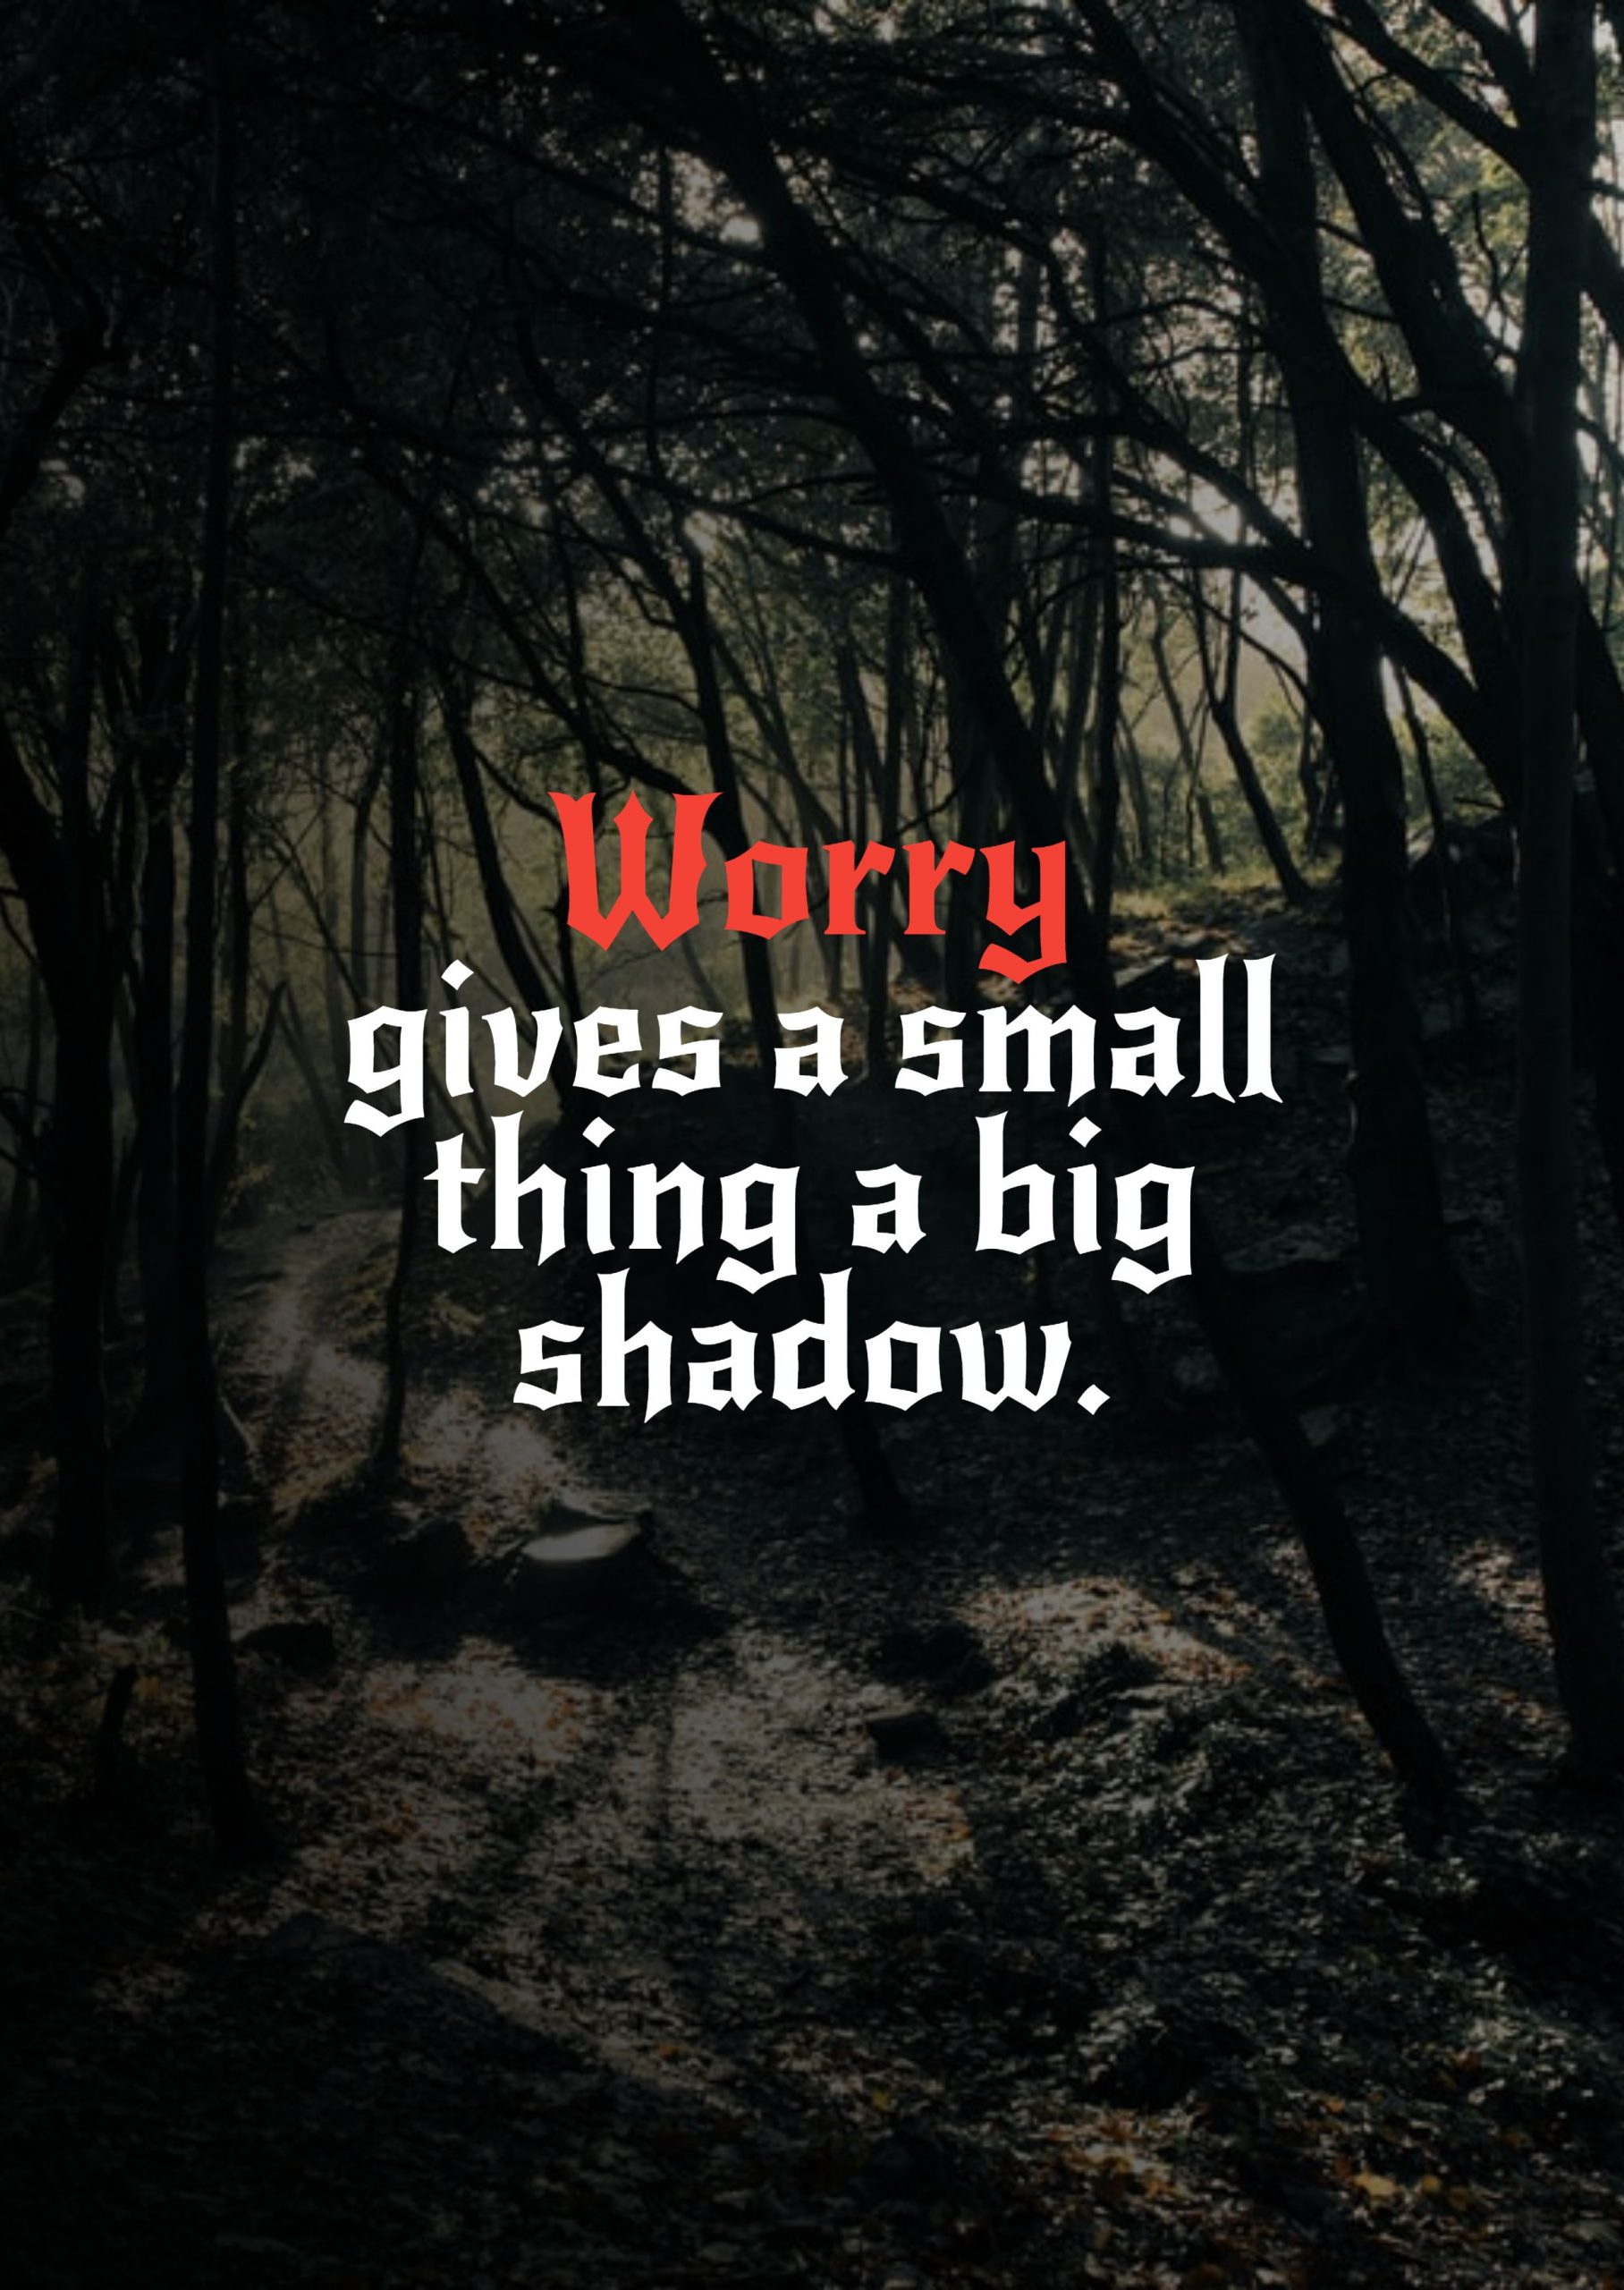 Quotes image of Worry gives a small thing a big shadow.